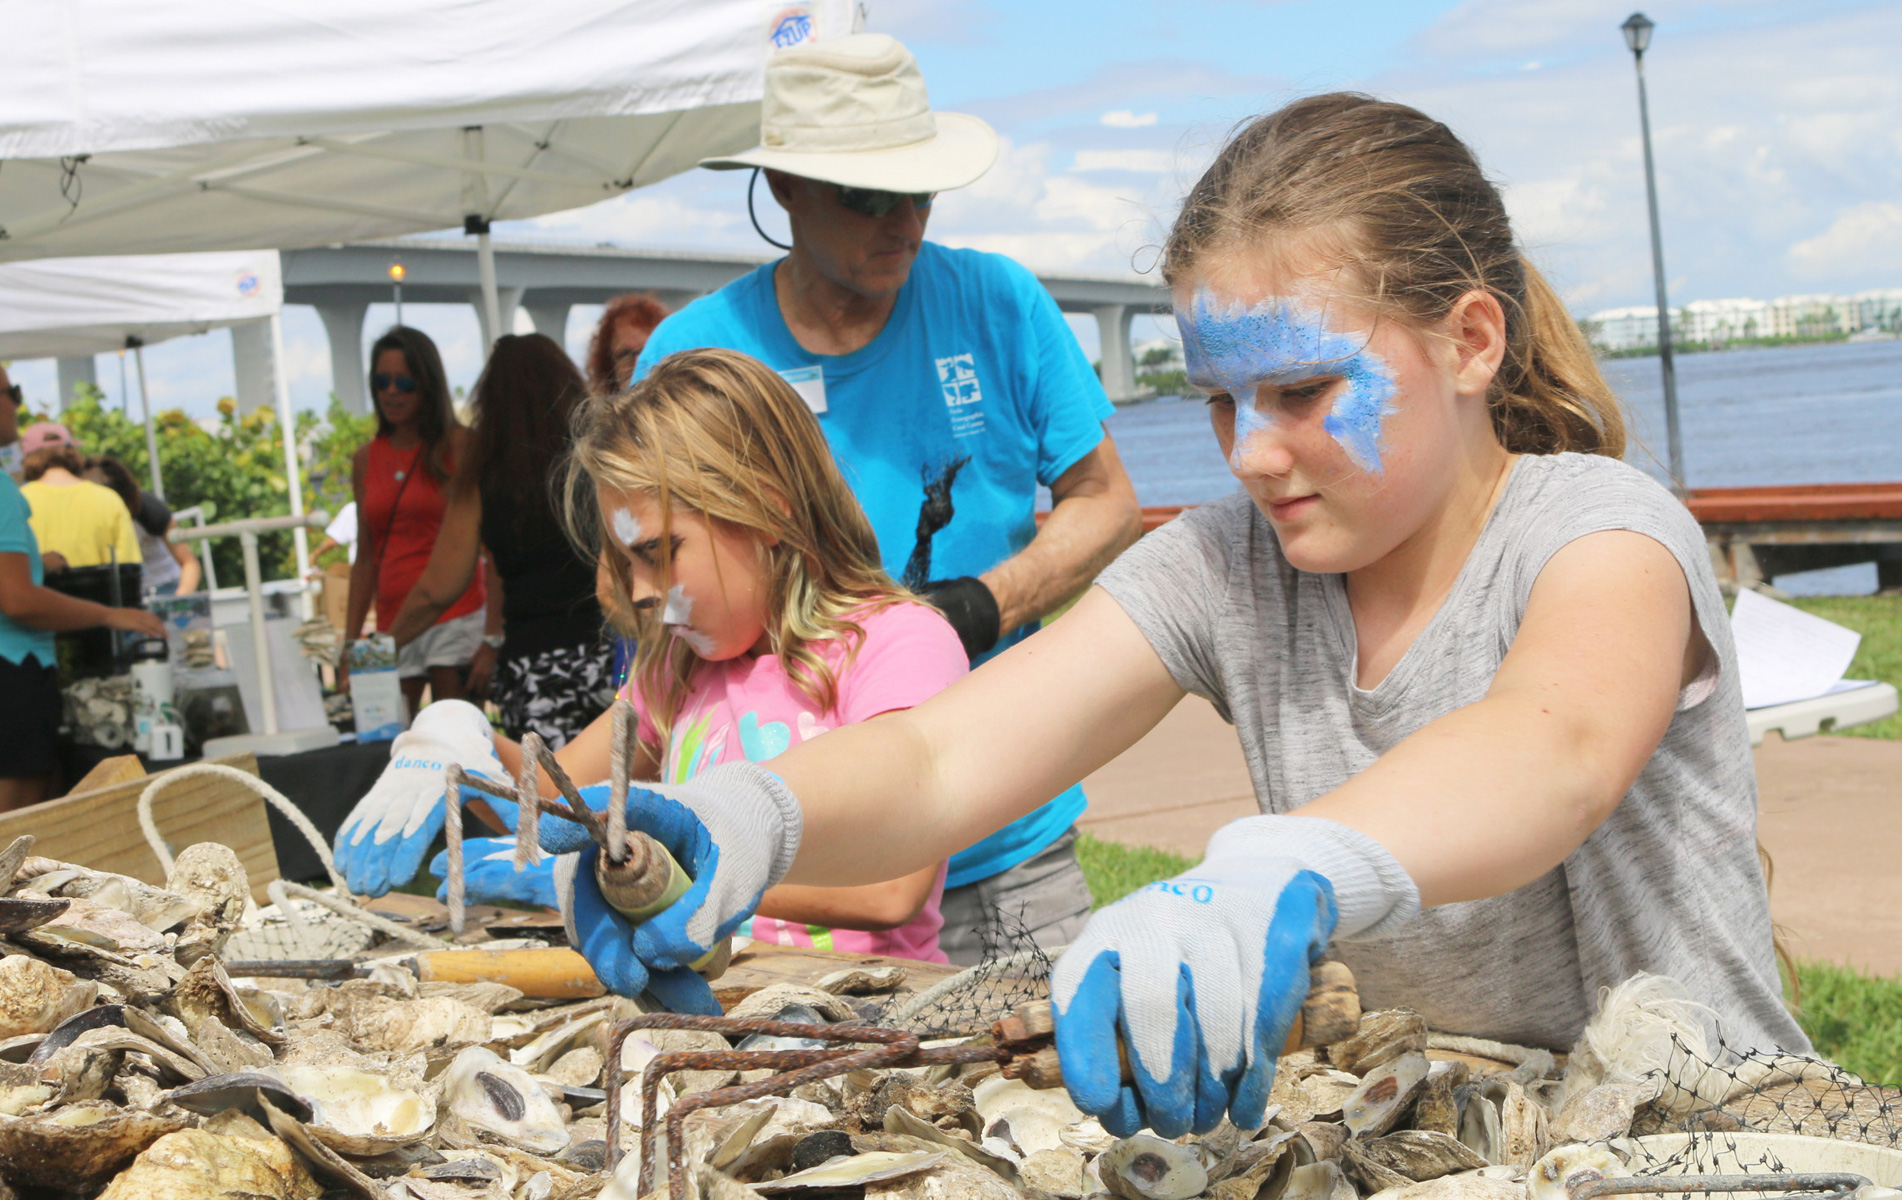 Children bagging oyster shells